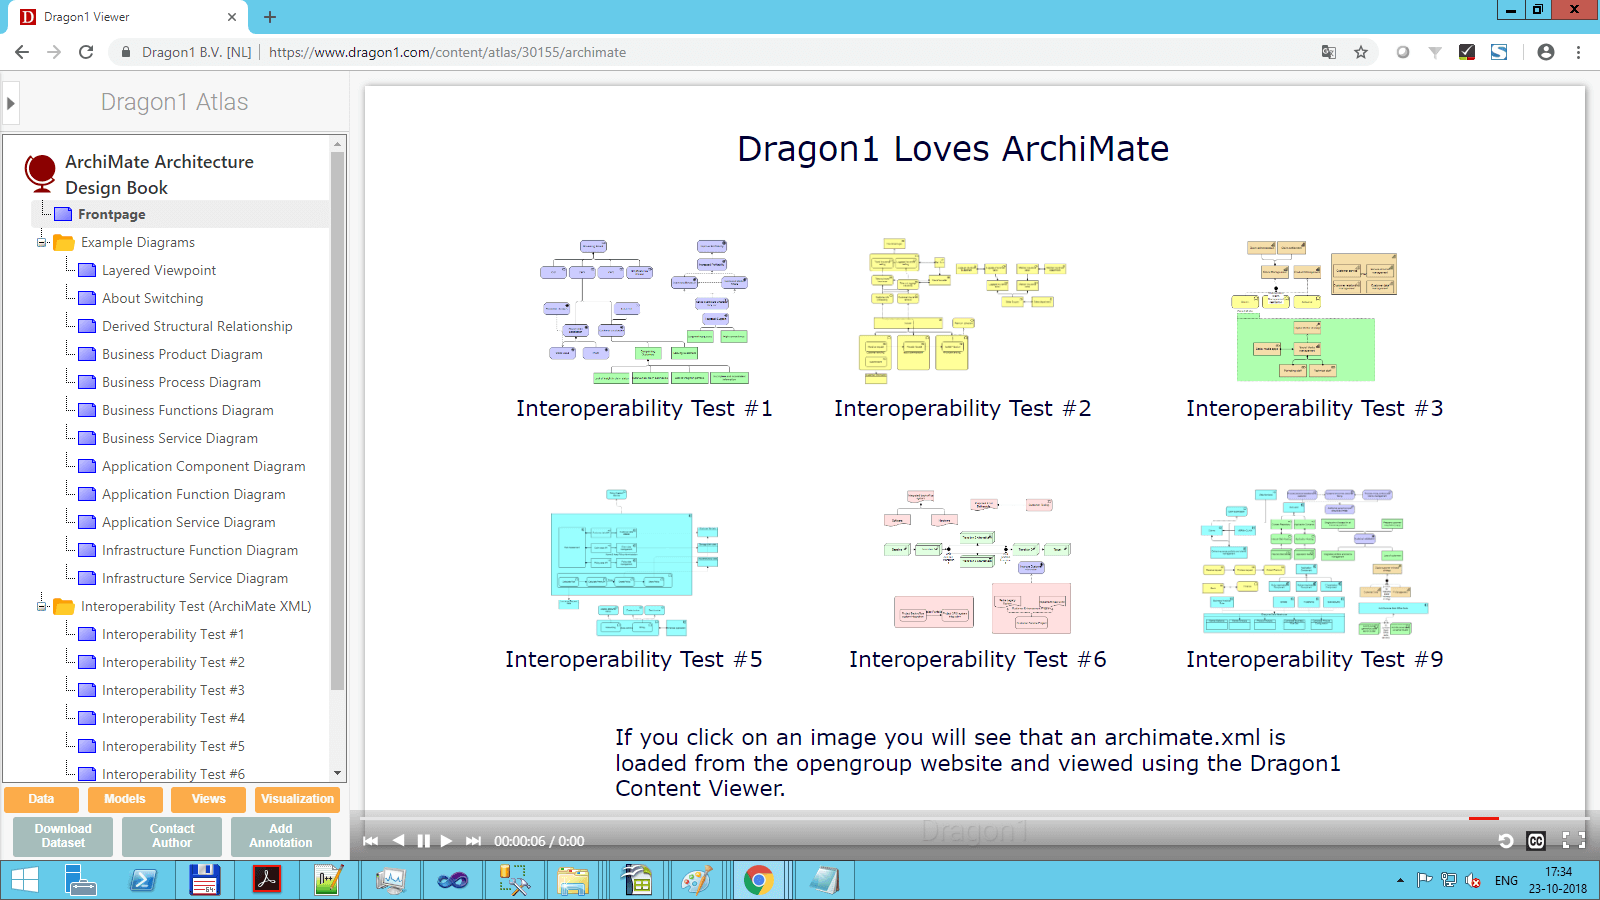 dragon1 loves archimate atlas